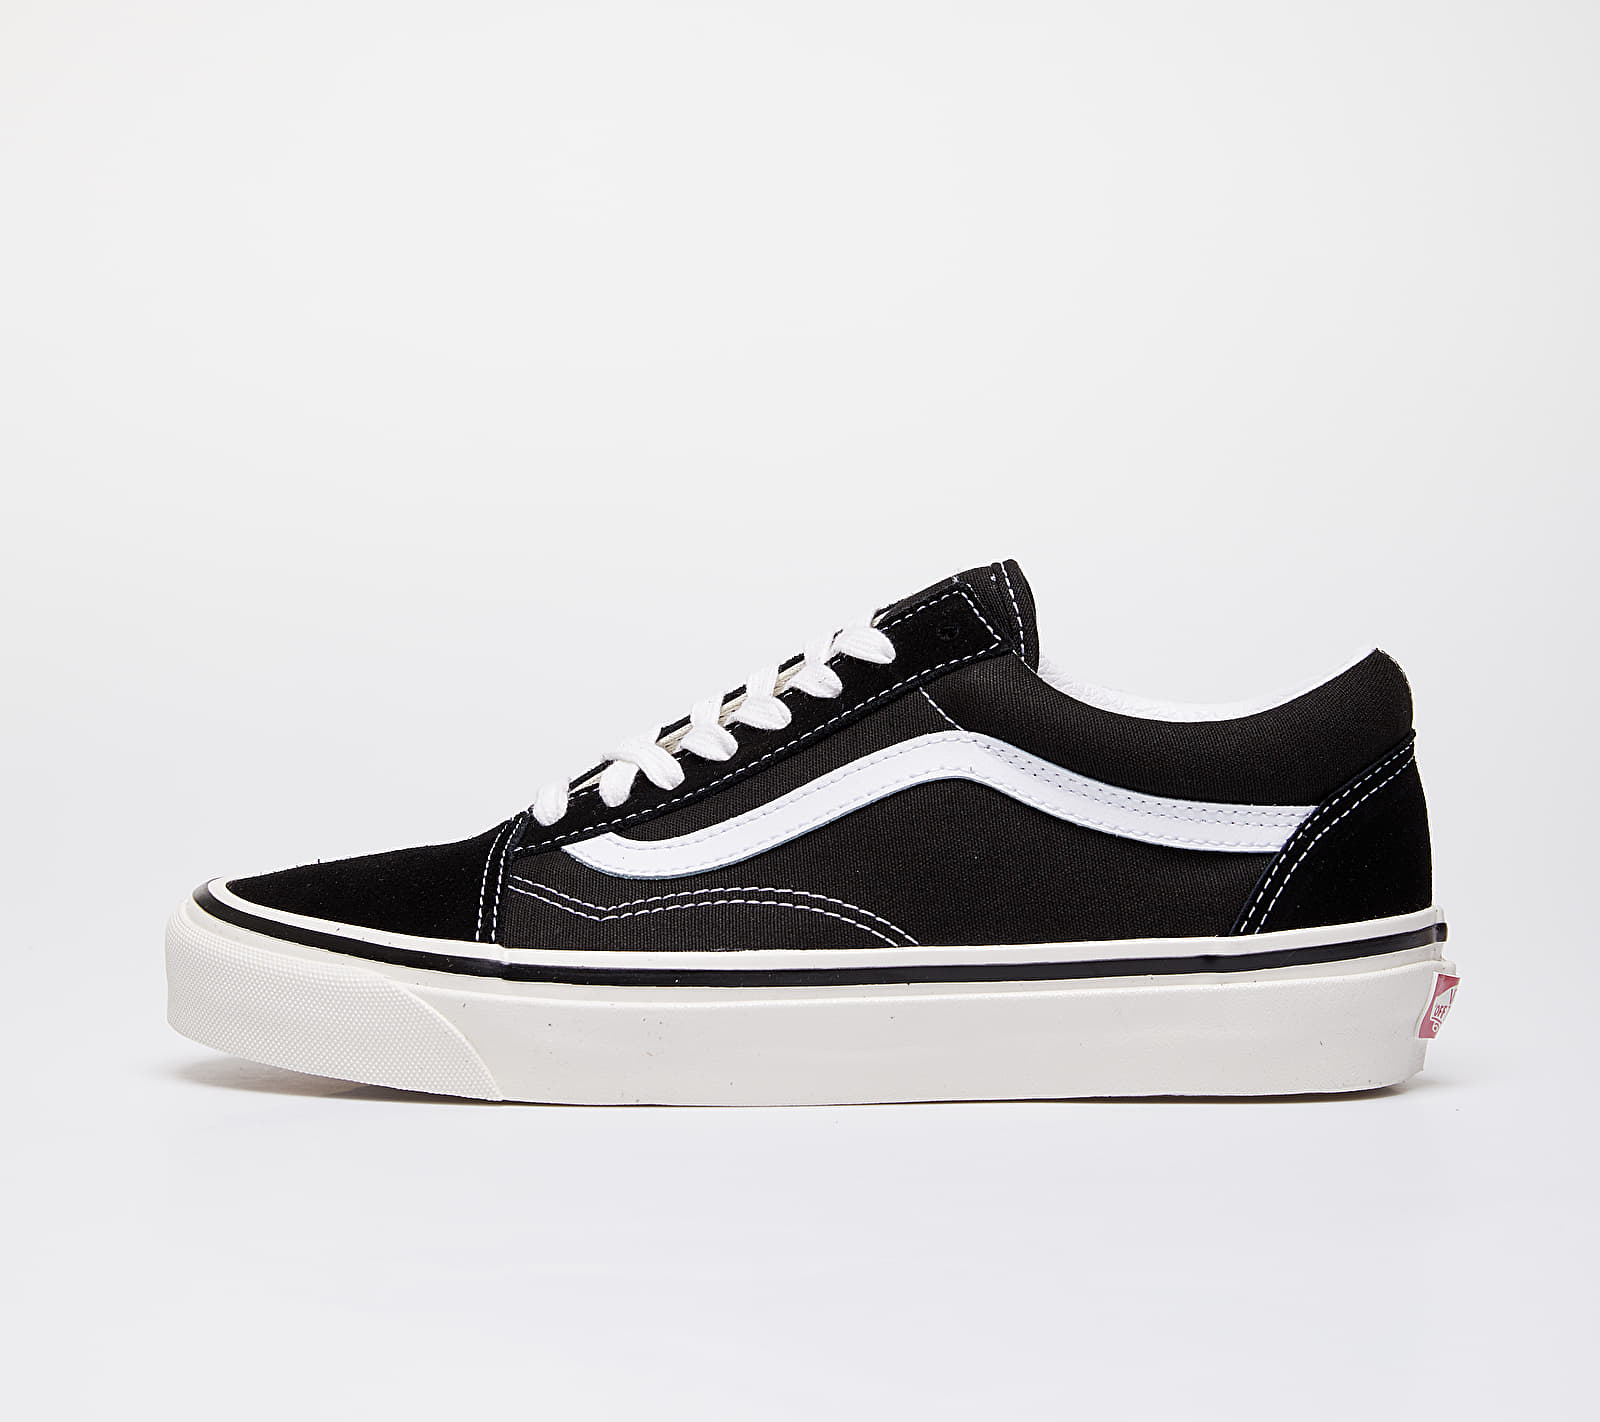 Vans Old Skool 36 DX Black/ True White EUR 44.5